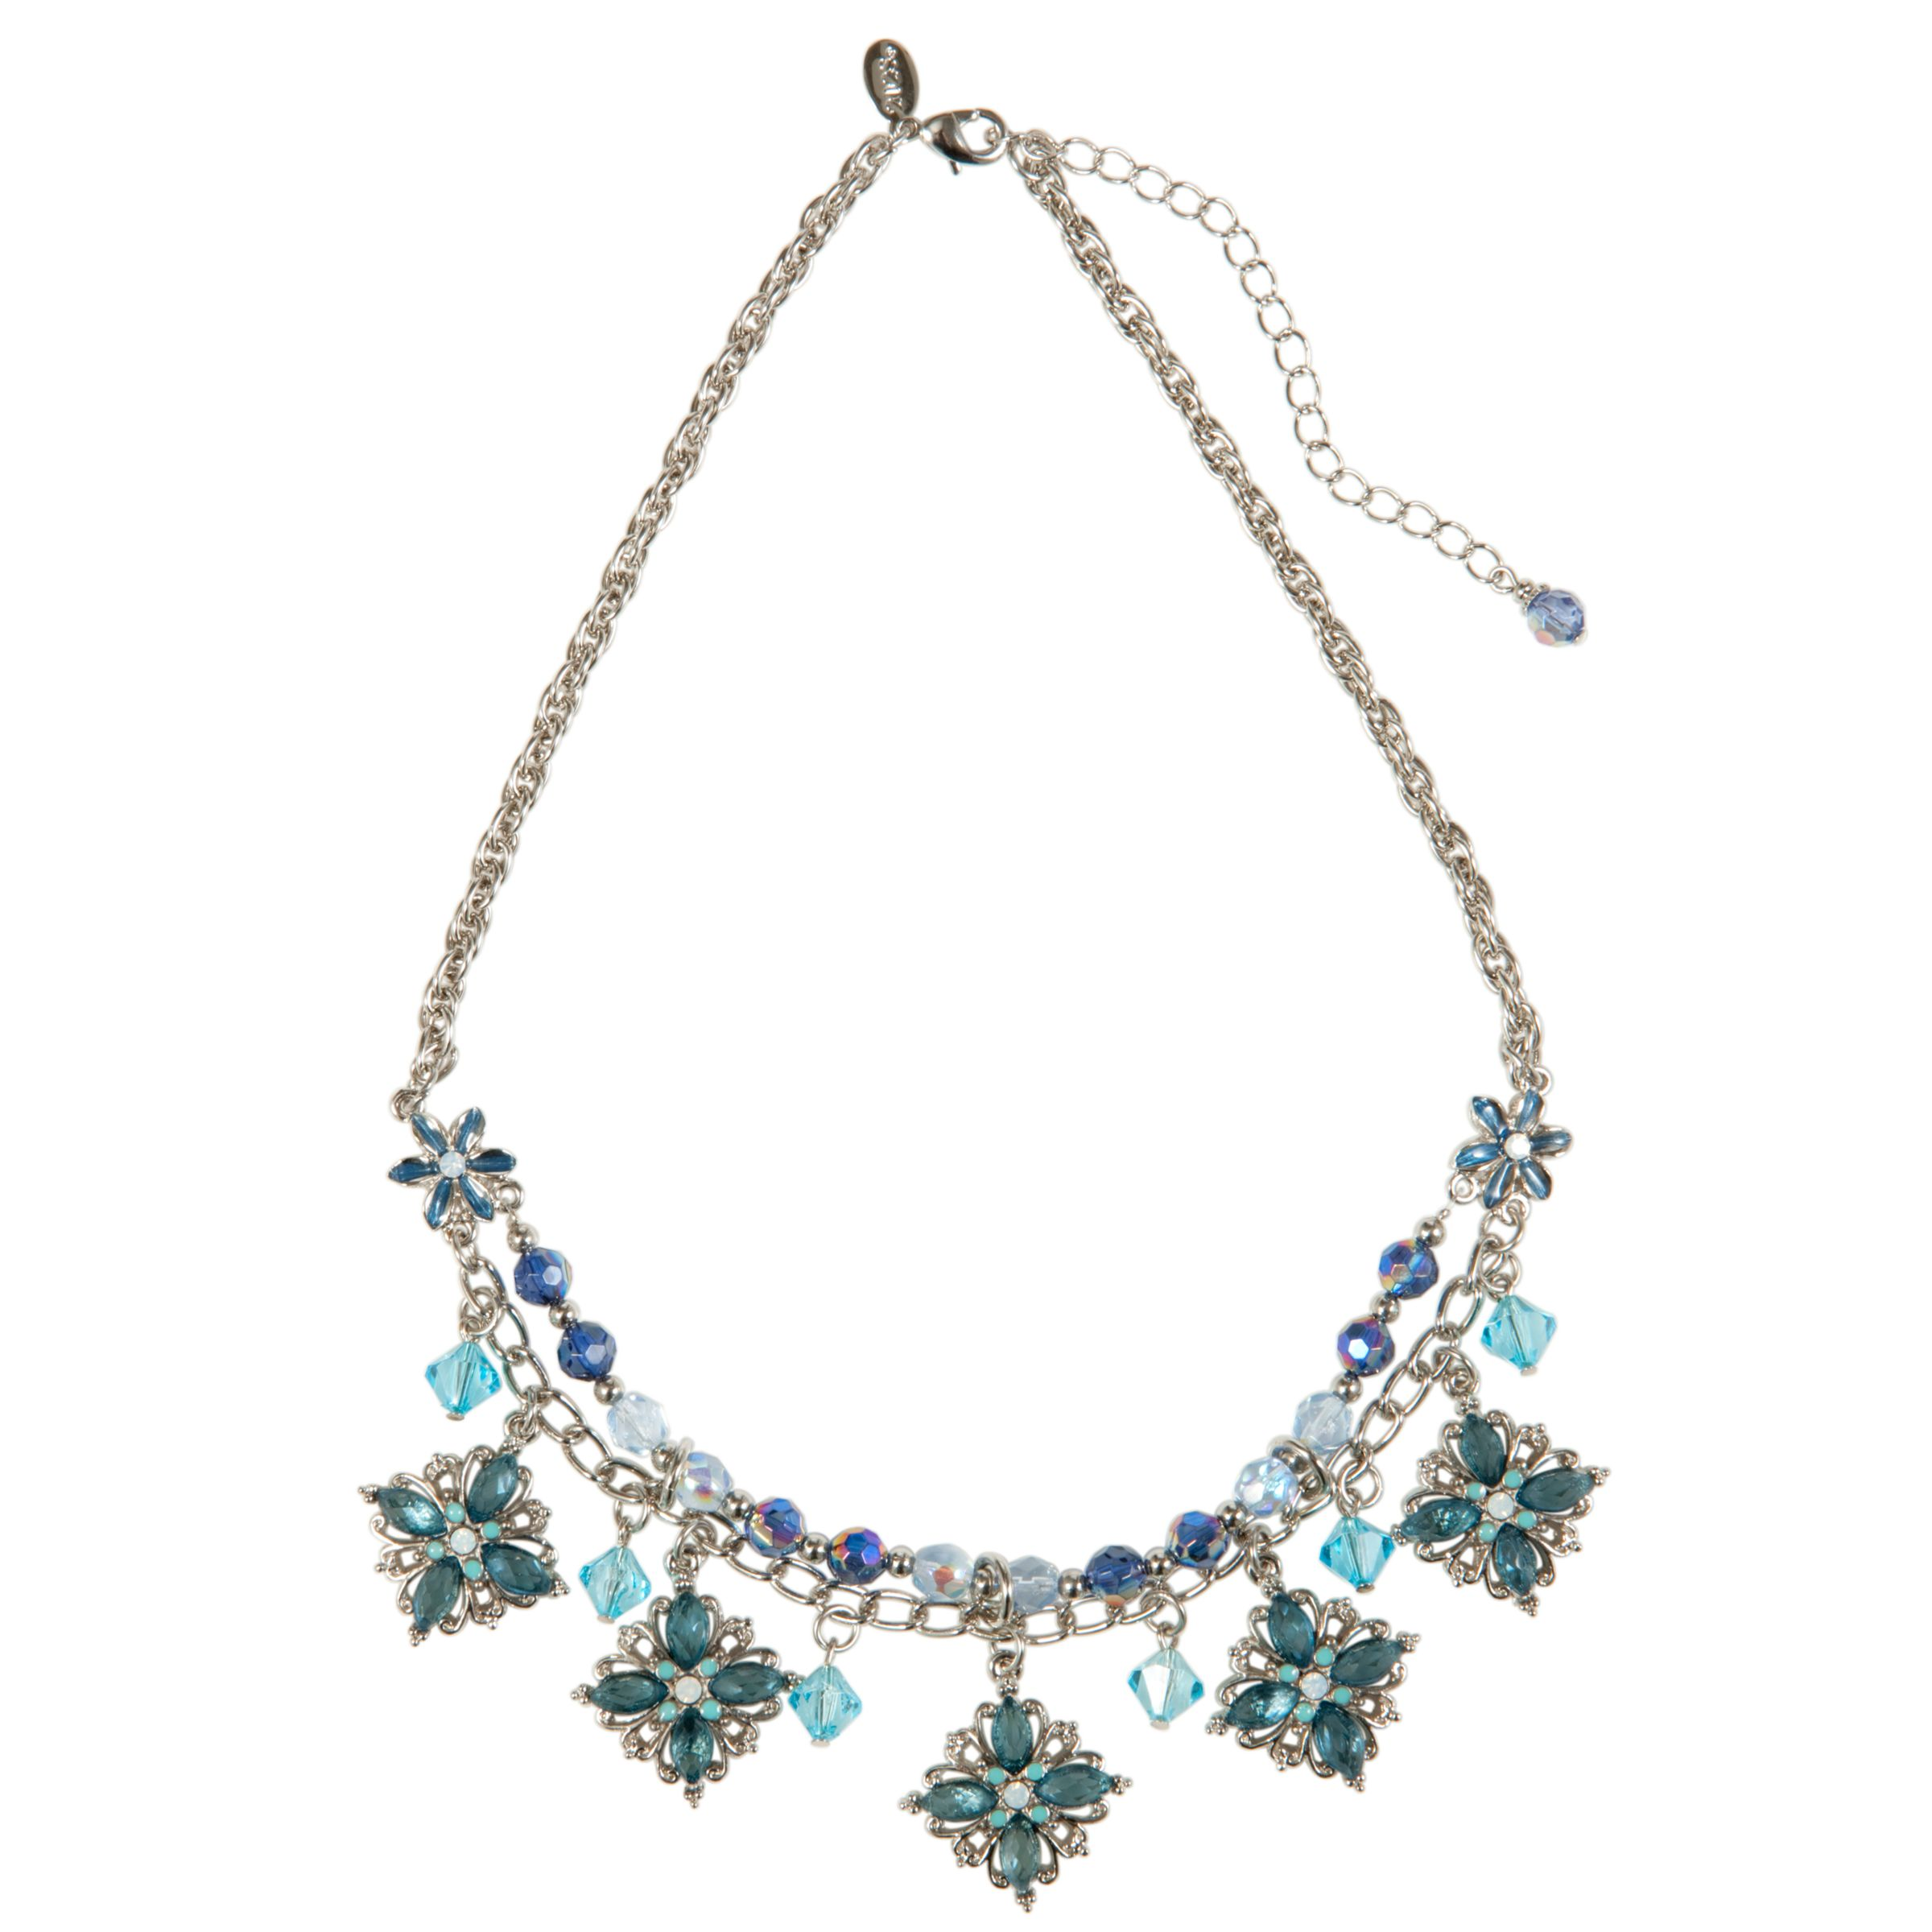 1928 New York Seabreeze Aquamarine Short Flower Bib Necklace